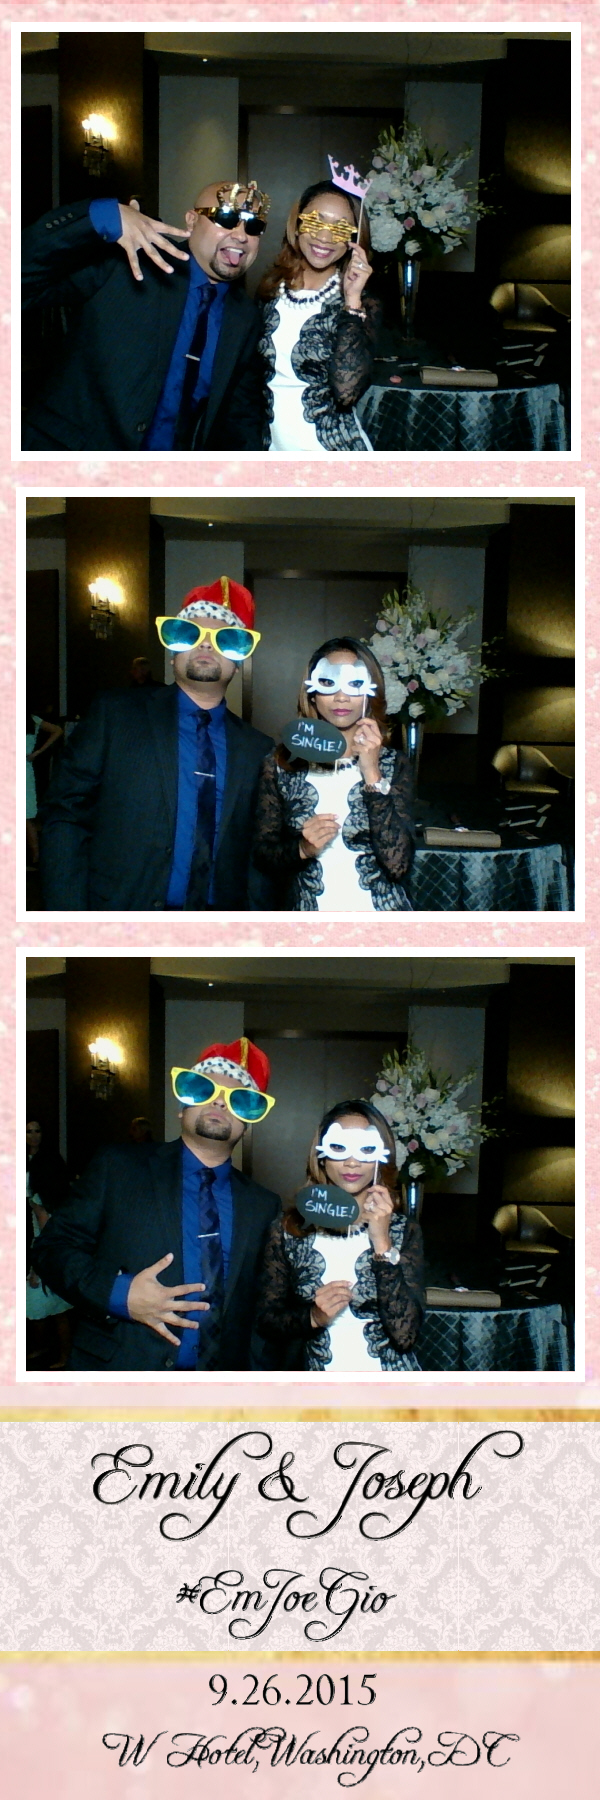 Guest House Events Photo Booth E&J (41).jpg